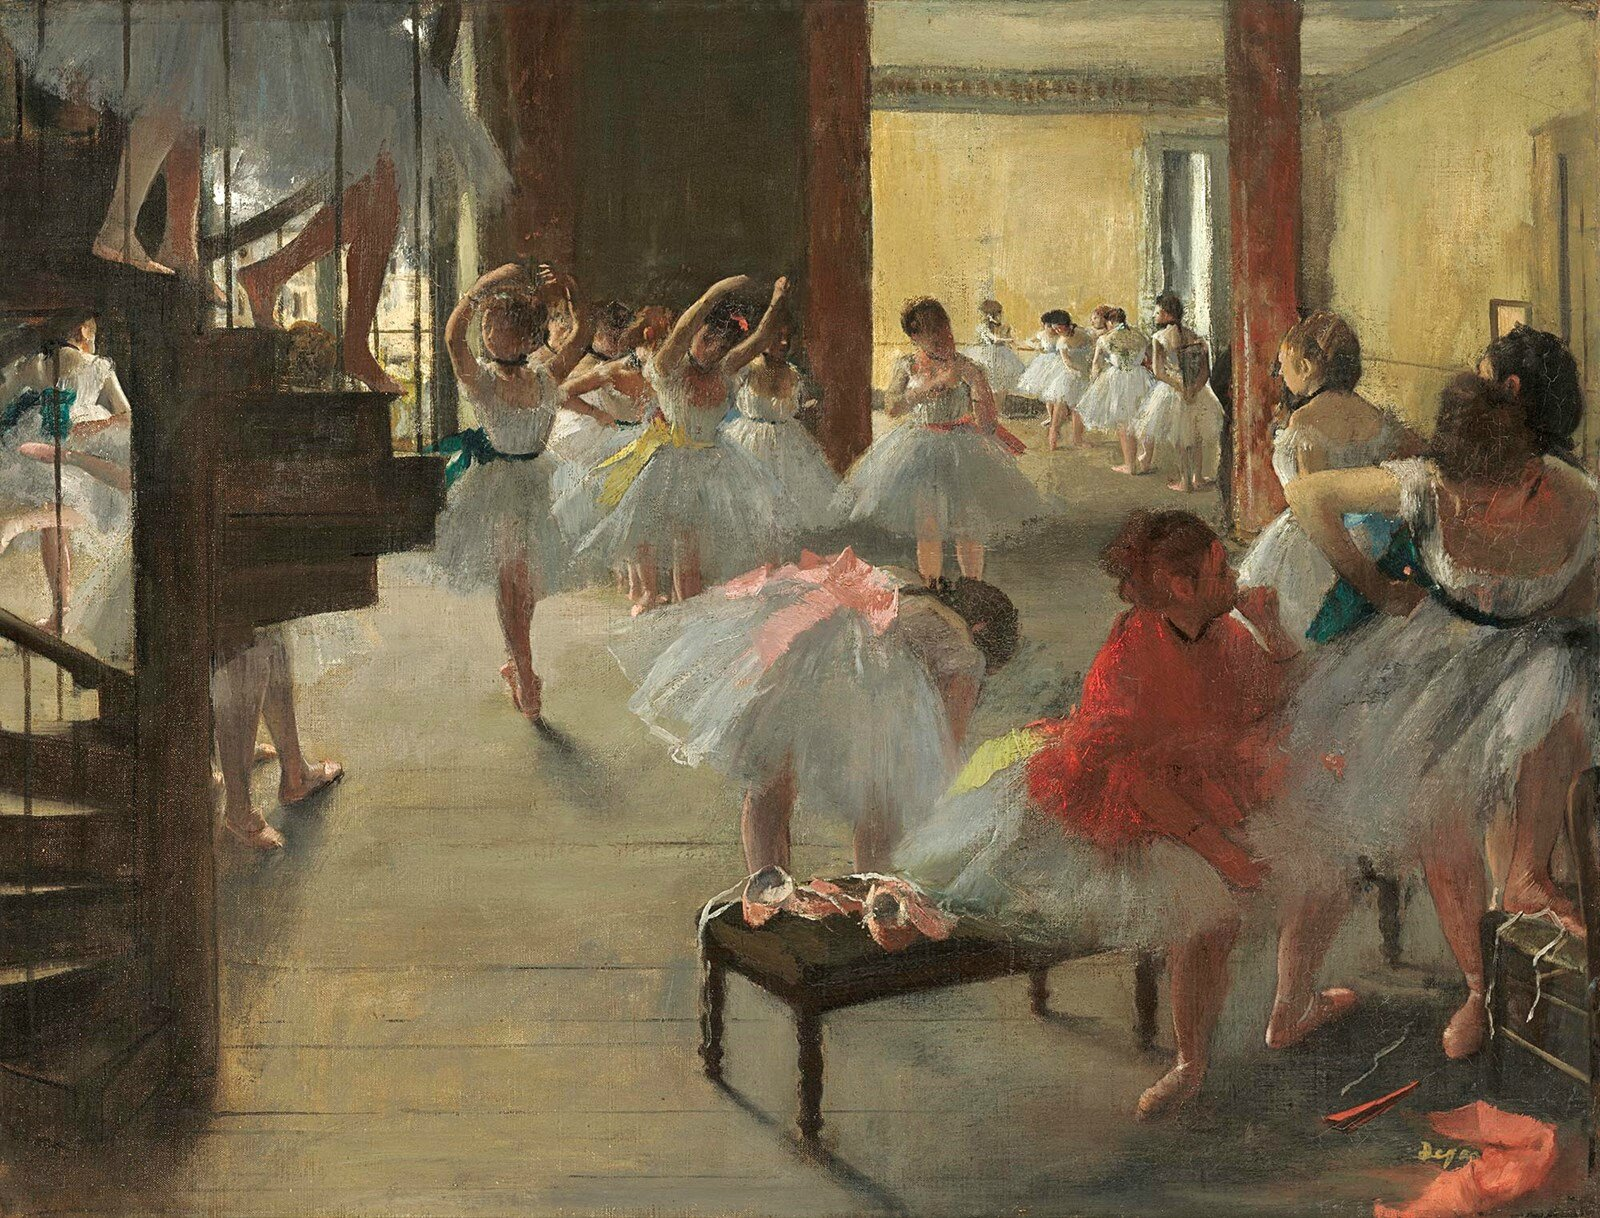 Degas retrospective debuts in the U.S. at the Museum of Fine Arts, Houston, through January 16, 2017